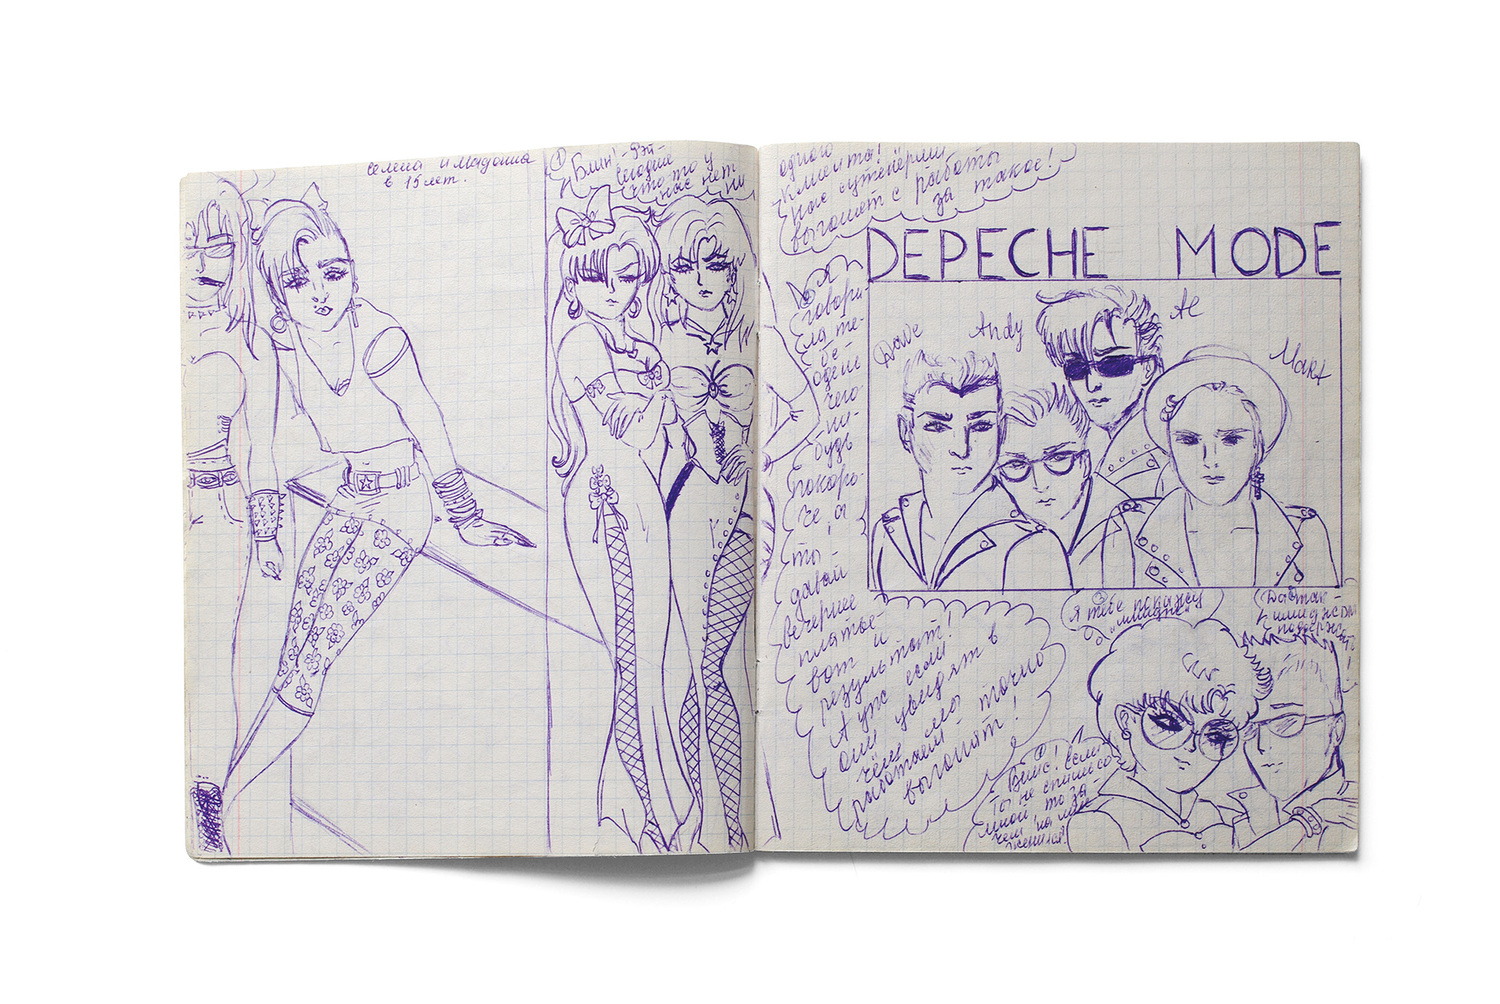 Our Hobby is Depeche Mode, 2006. Graphic novel by Masha.